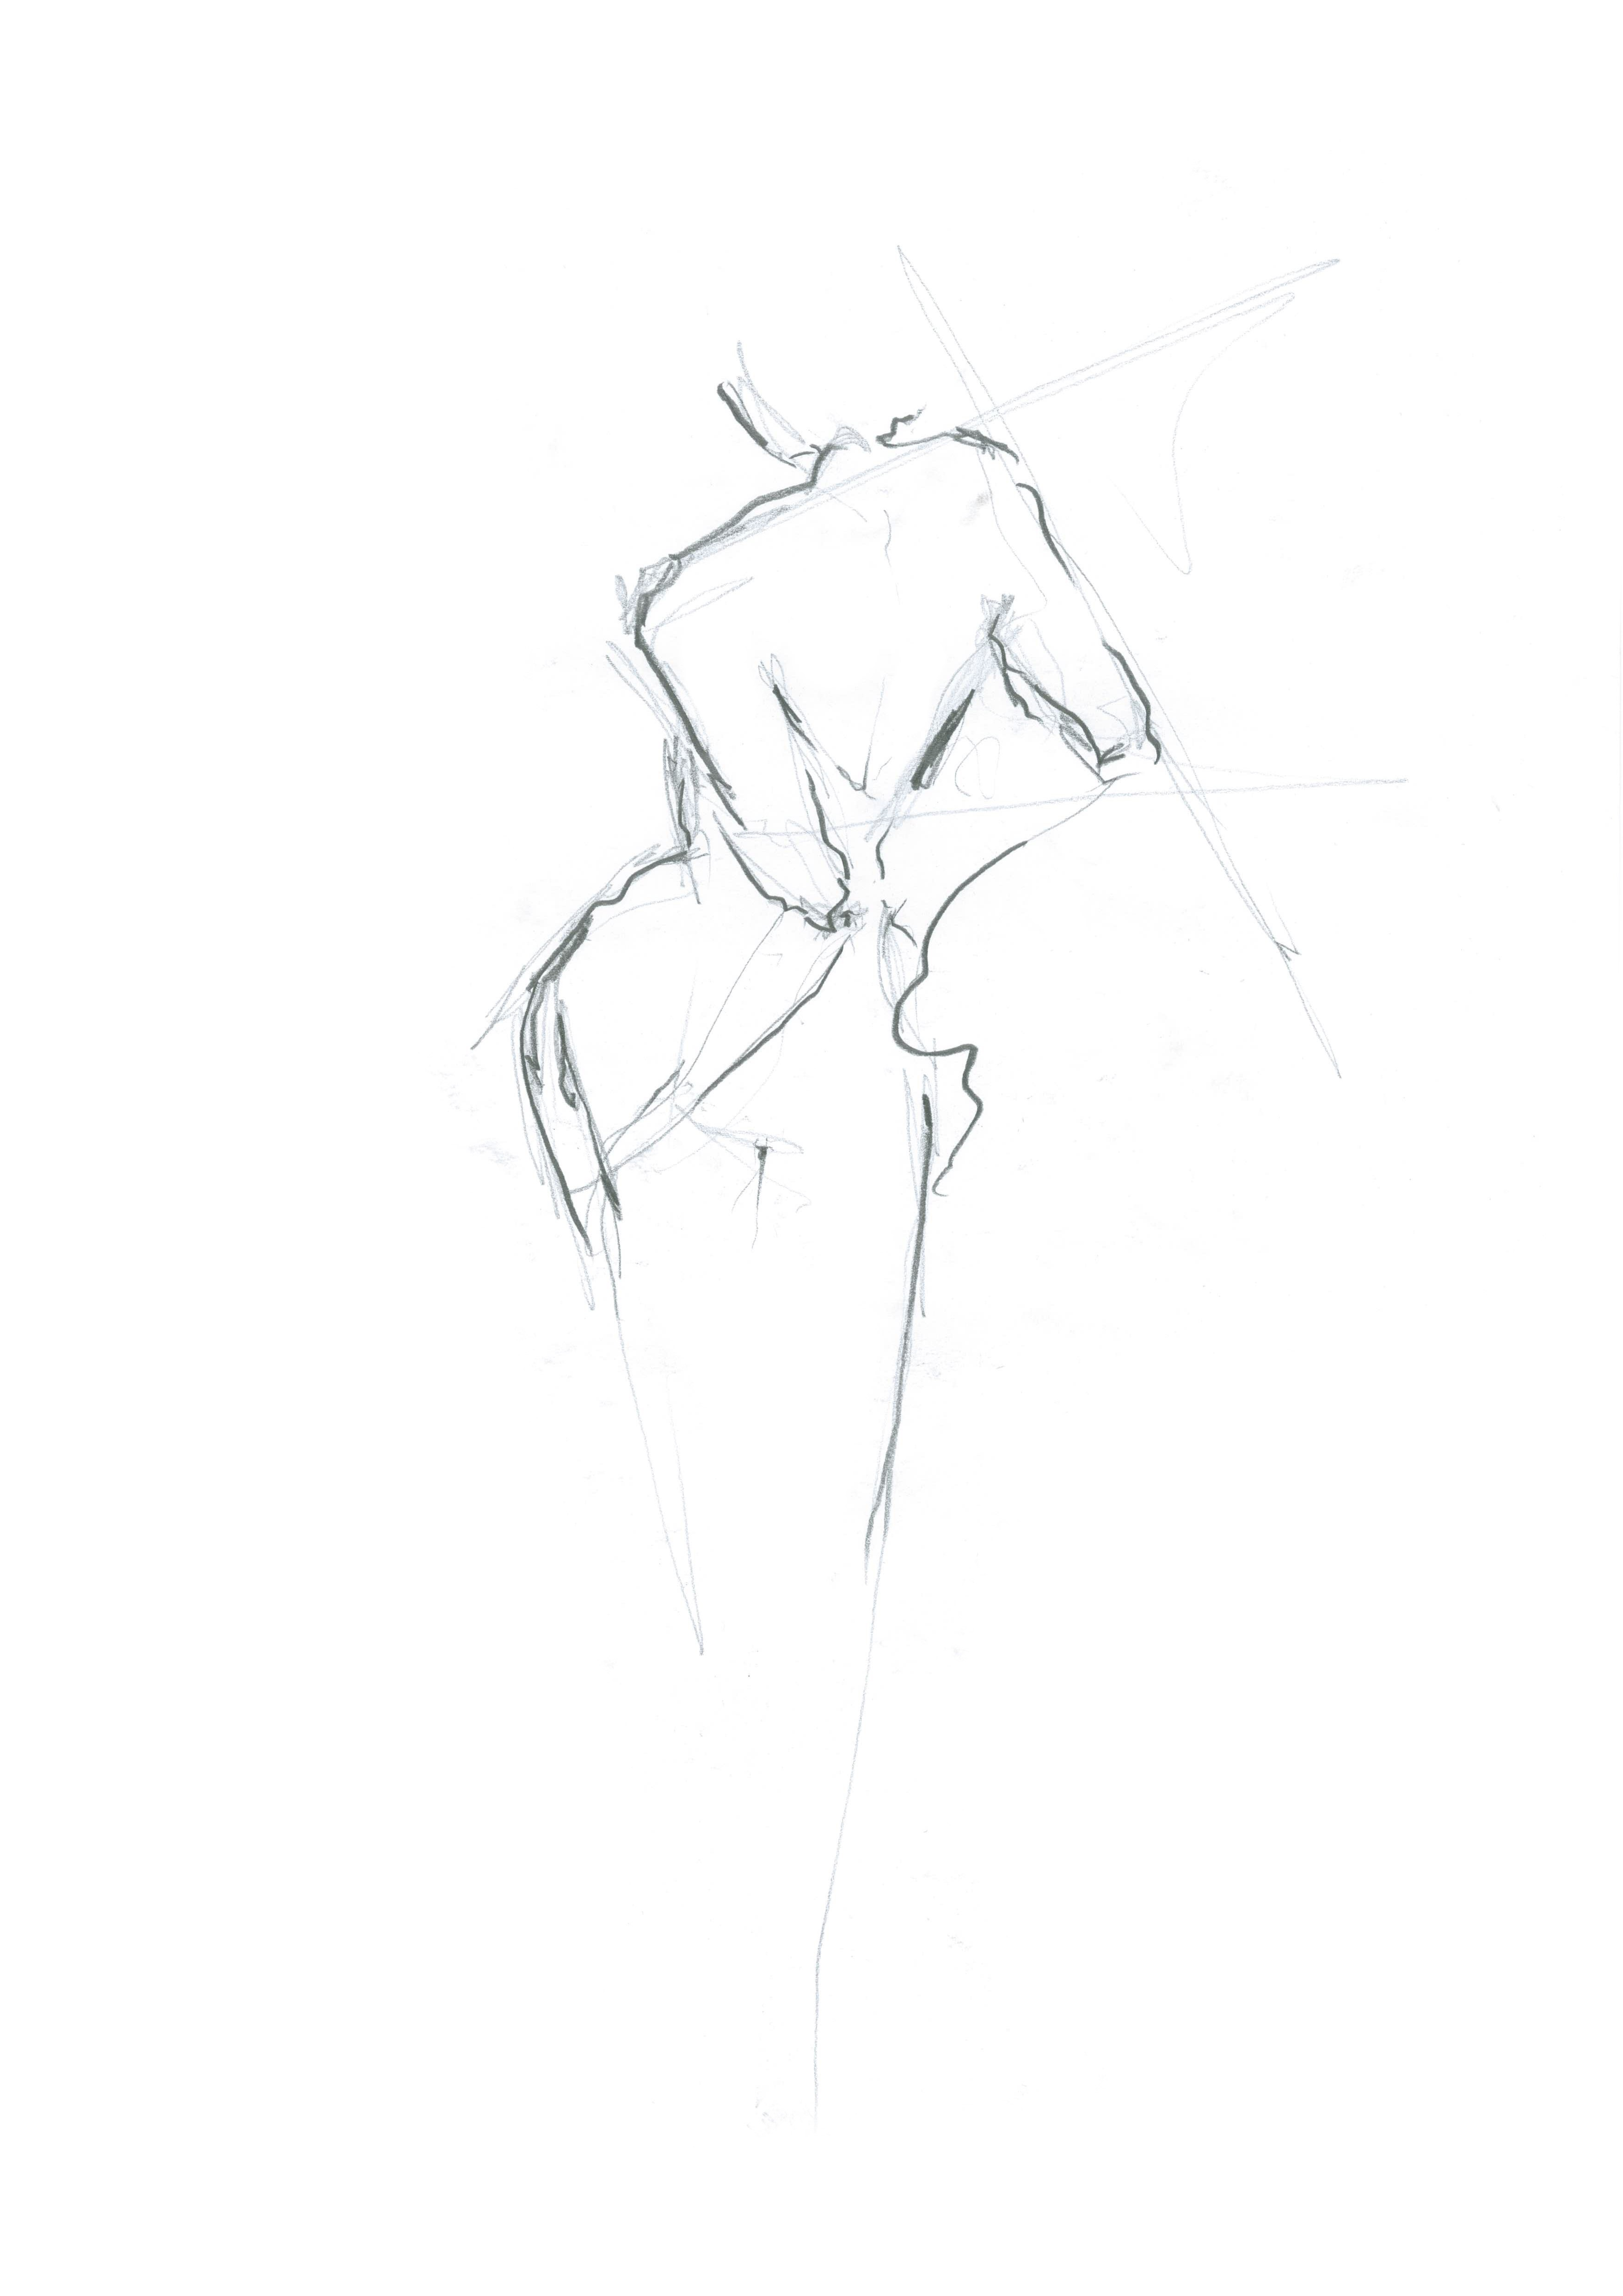 'moving figure in pencil'